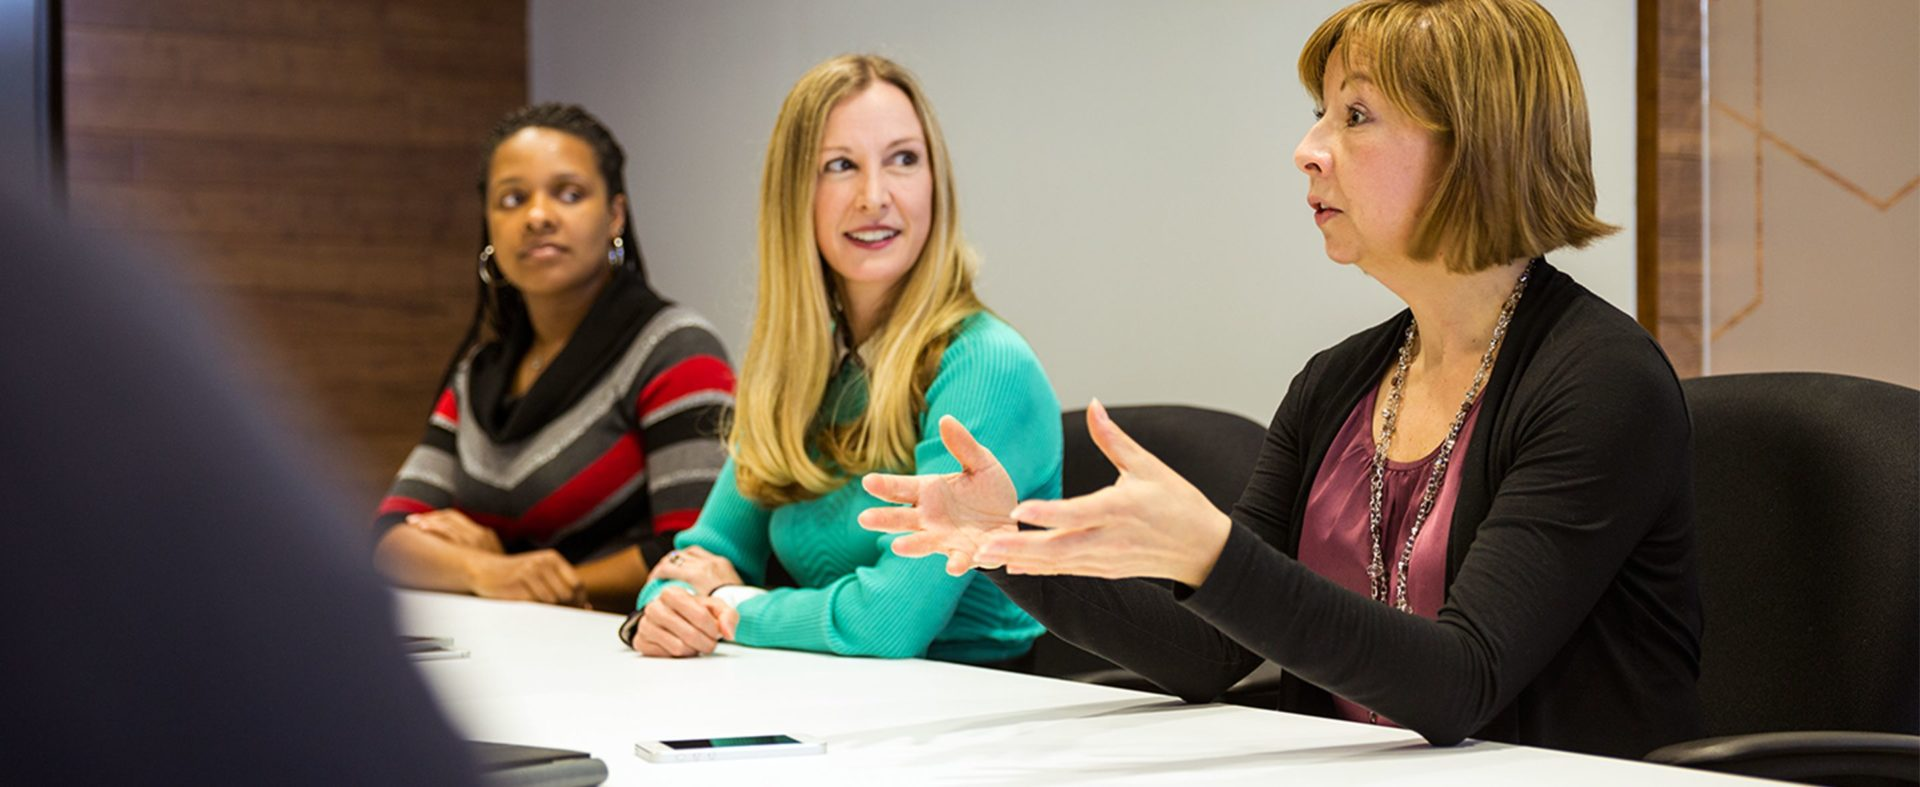 Two women listening to an older woman speaking at a conference table .